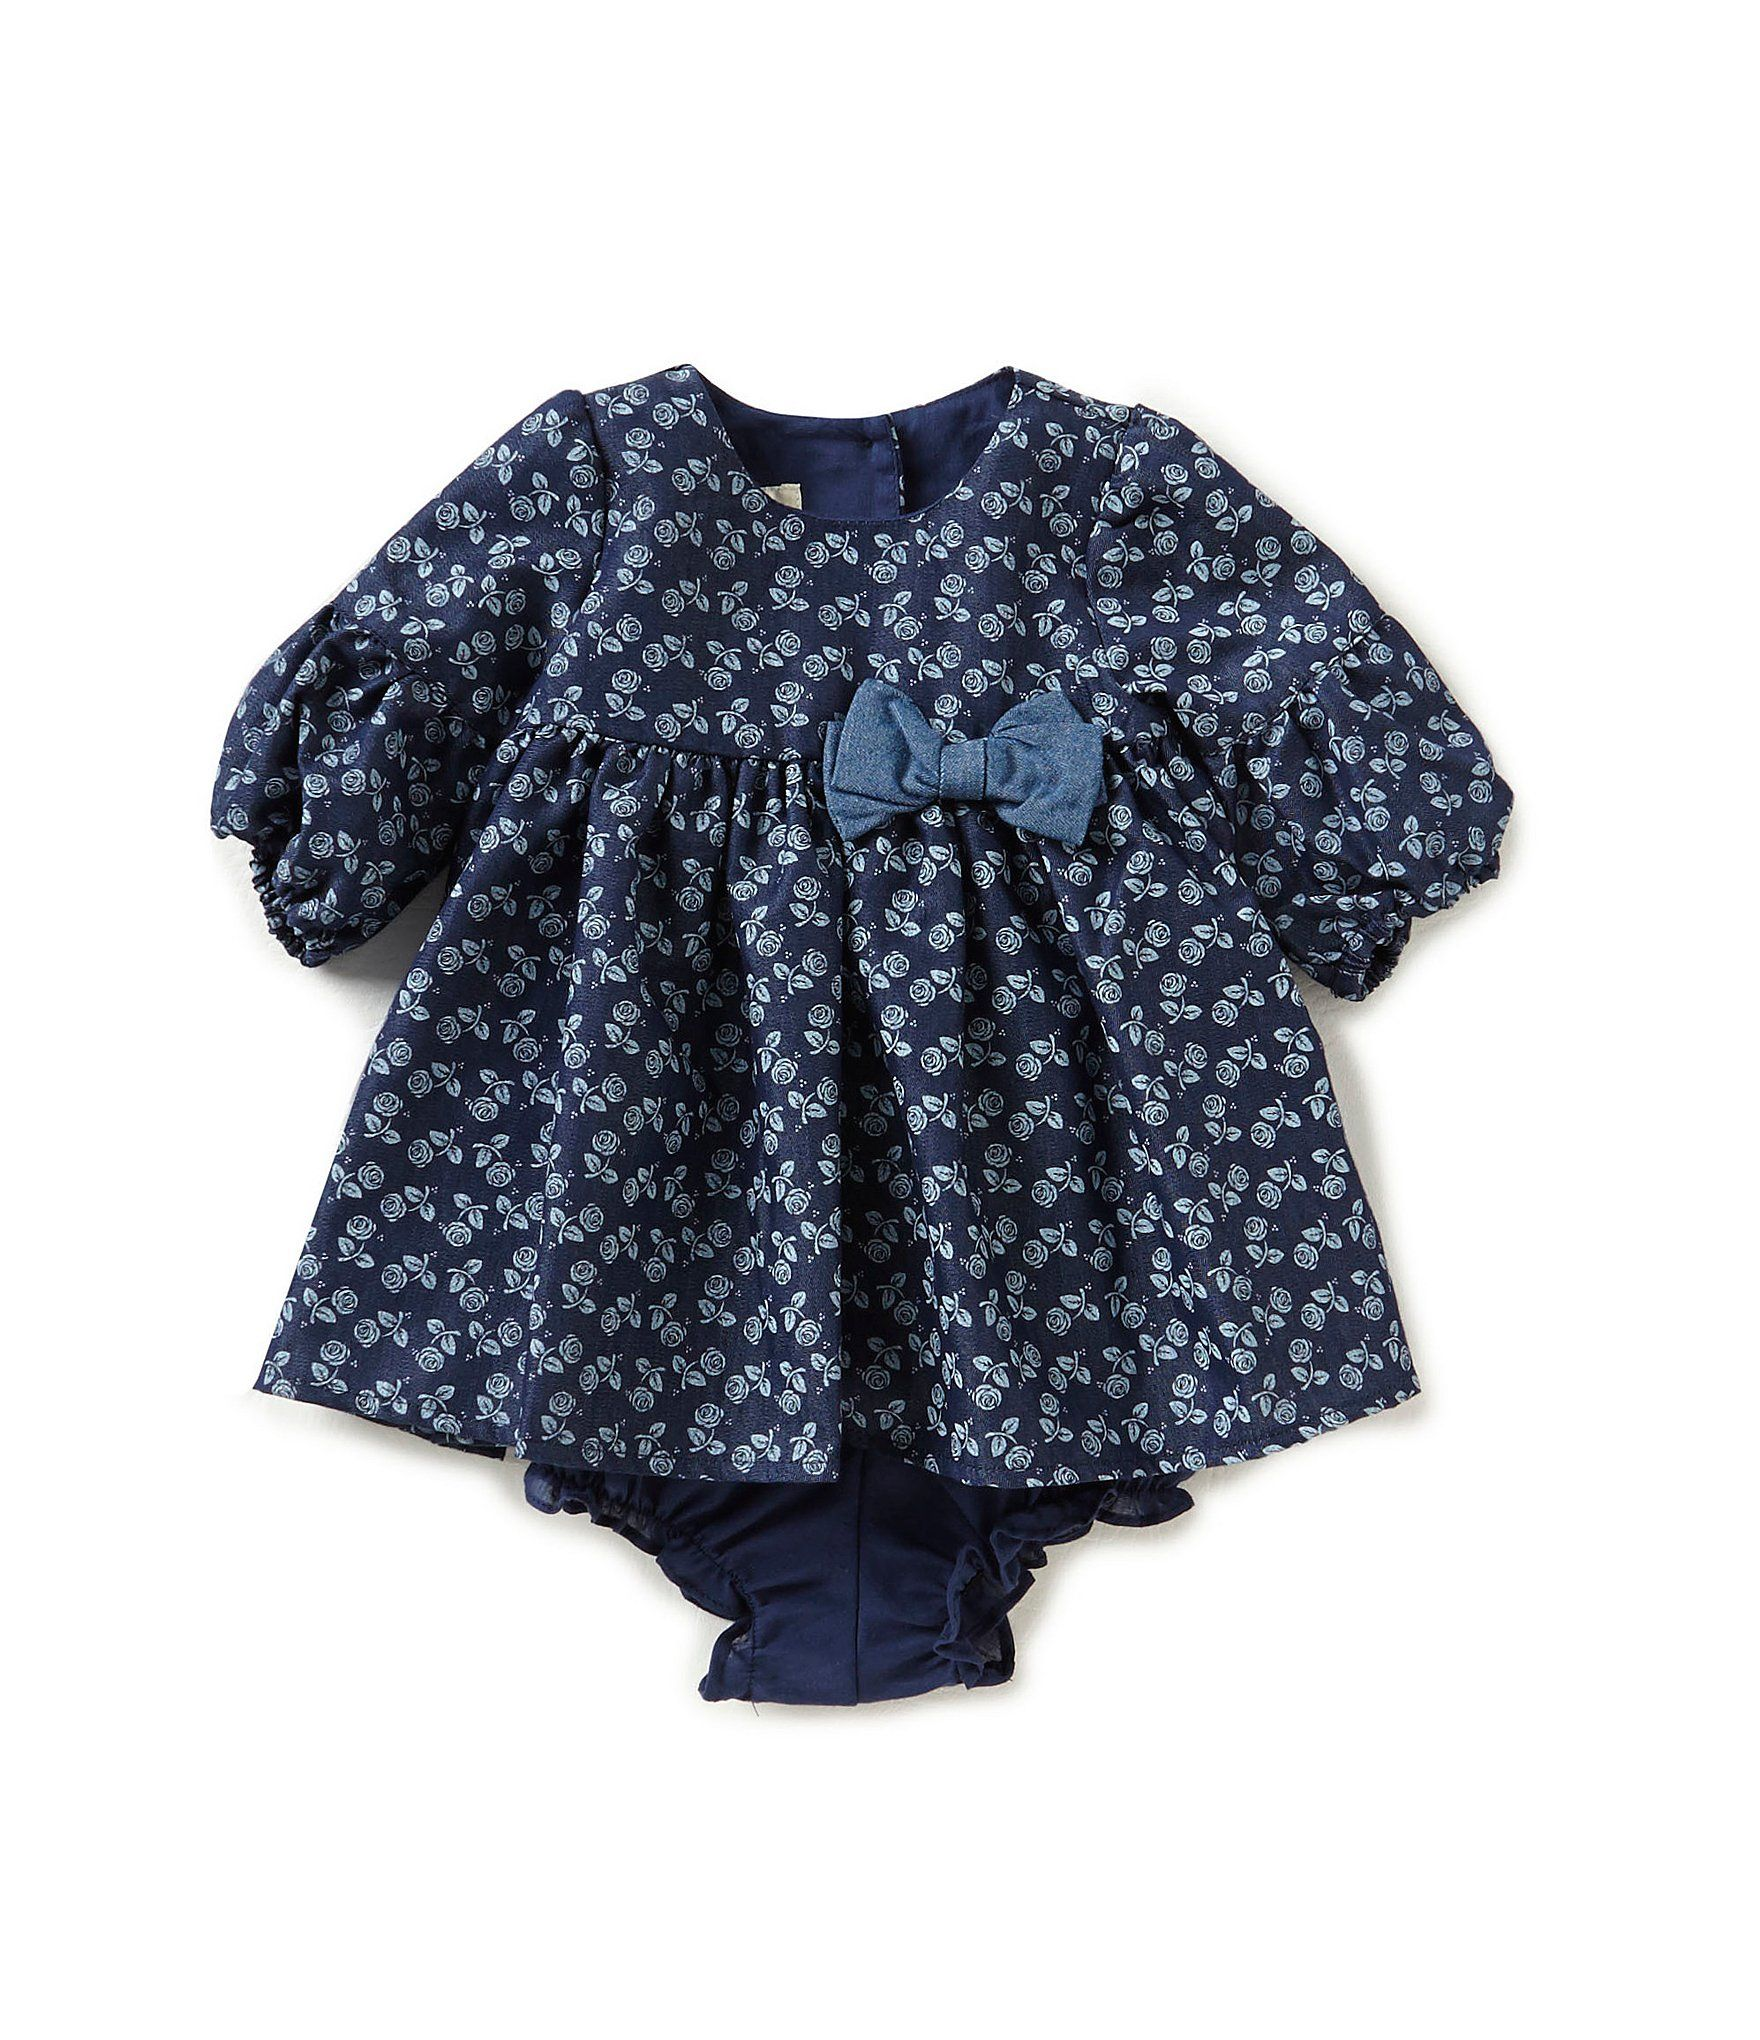 Laura Ashley London Baby Girls Newborn24 Months Printed Bow Dress